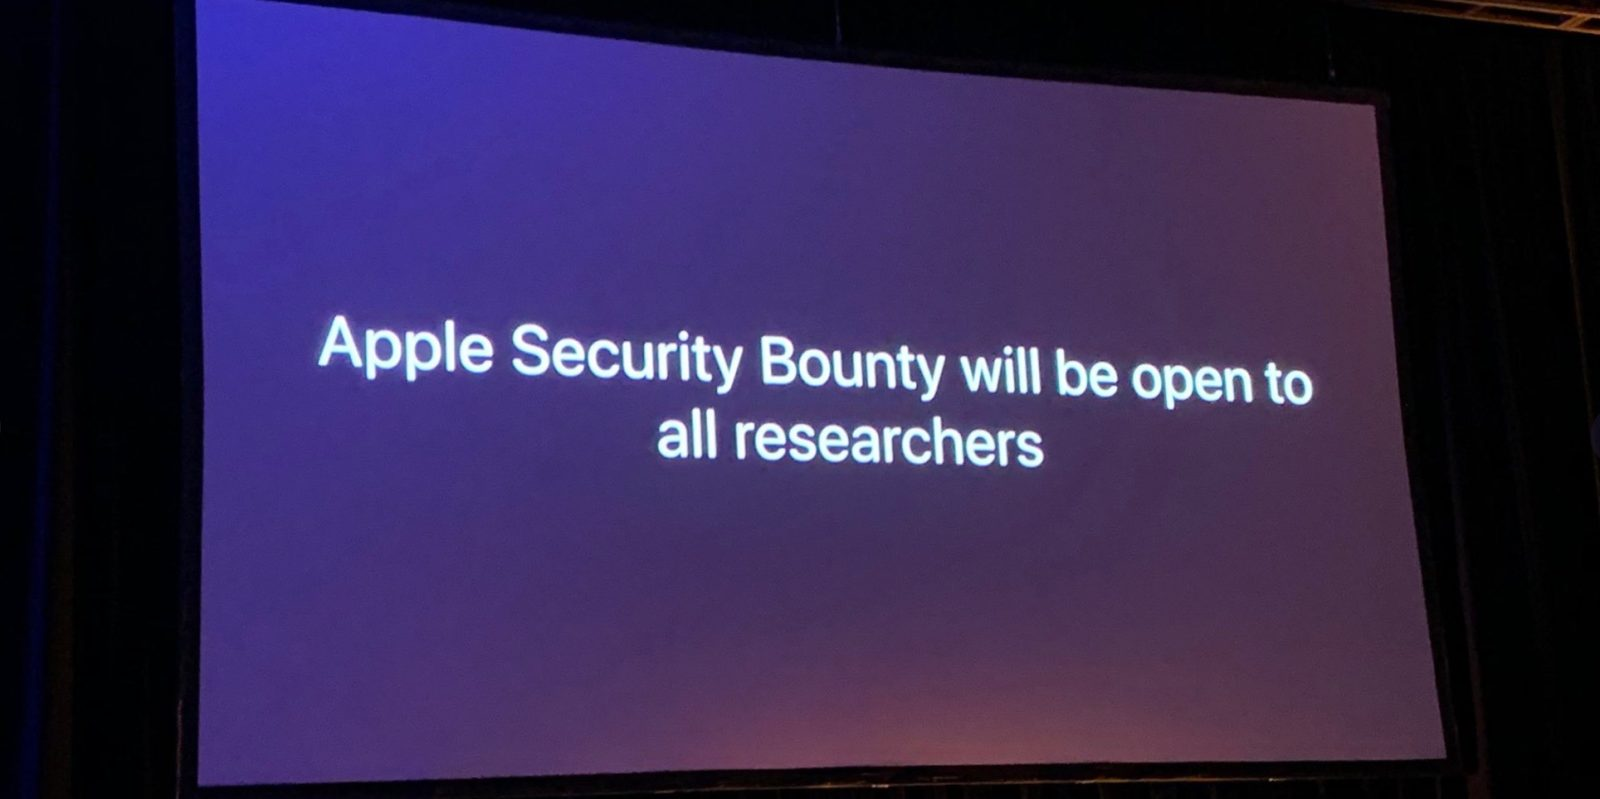 Apple vastly expands security bounty program - 9to5Mac